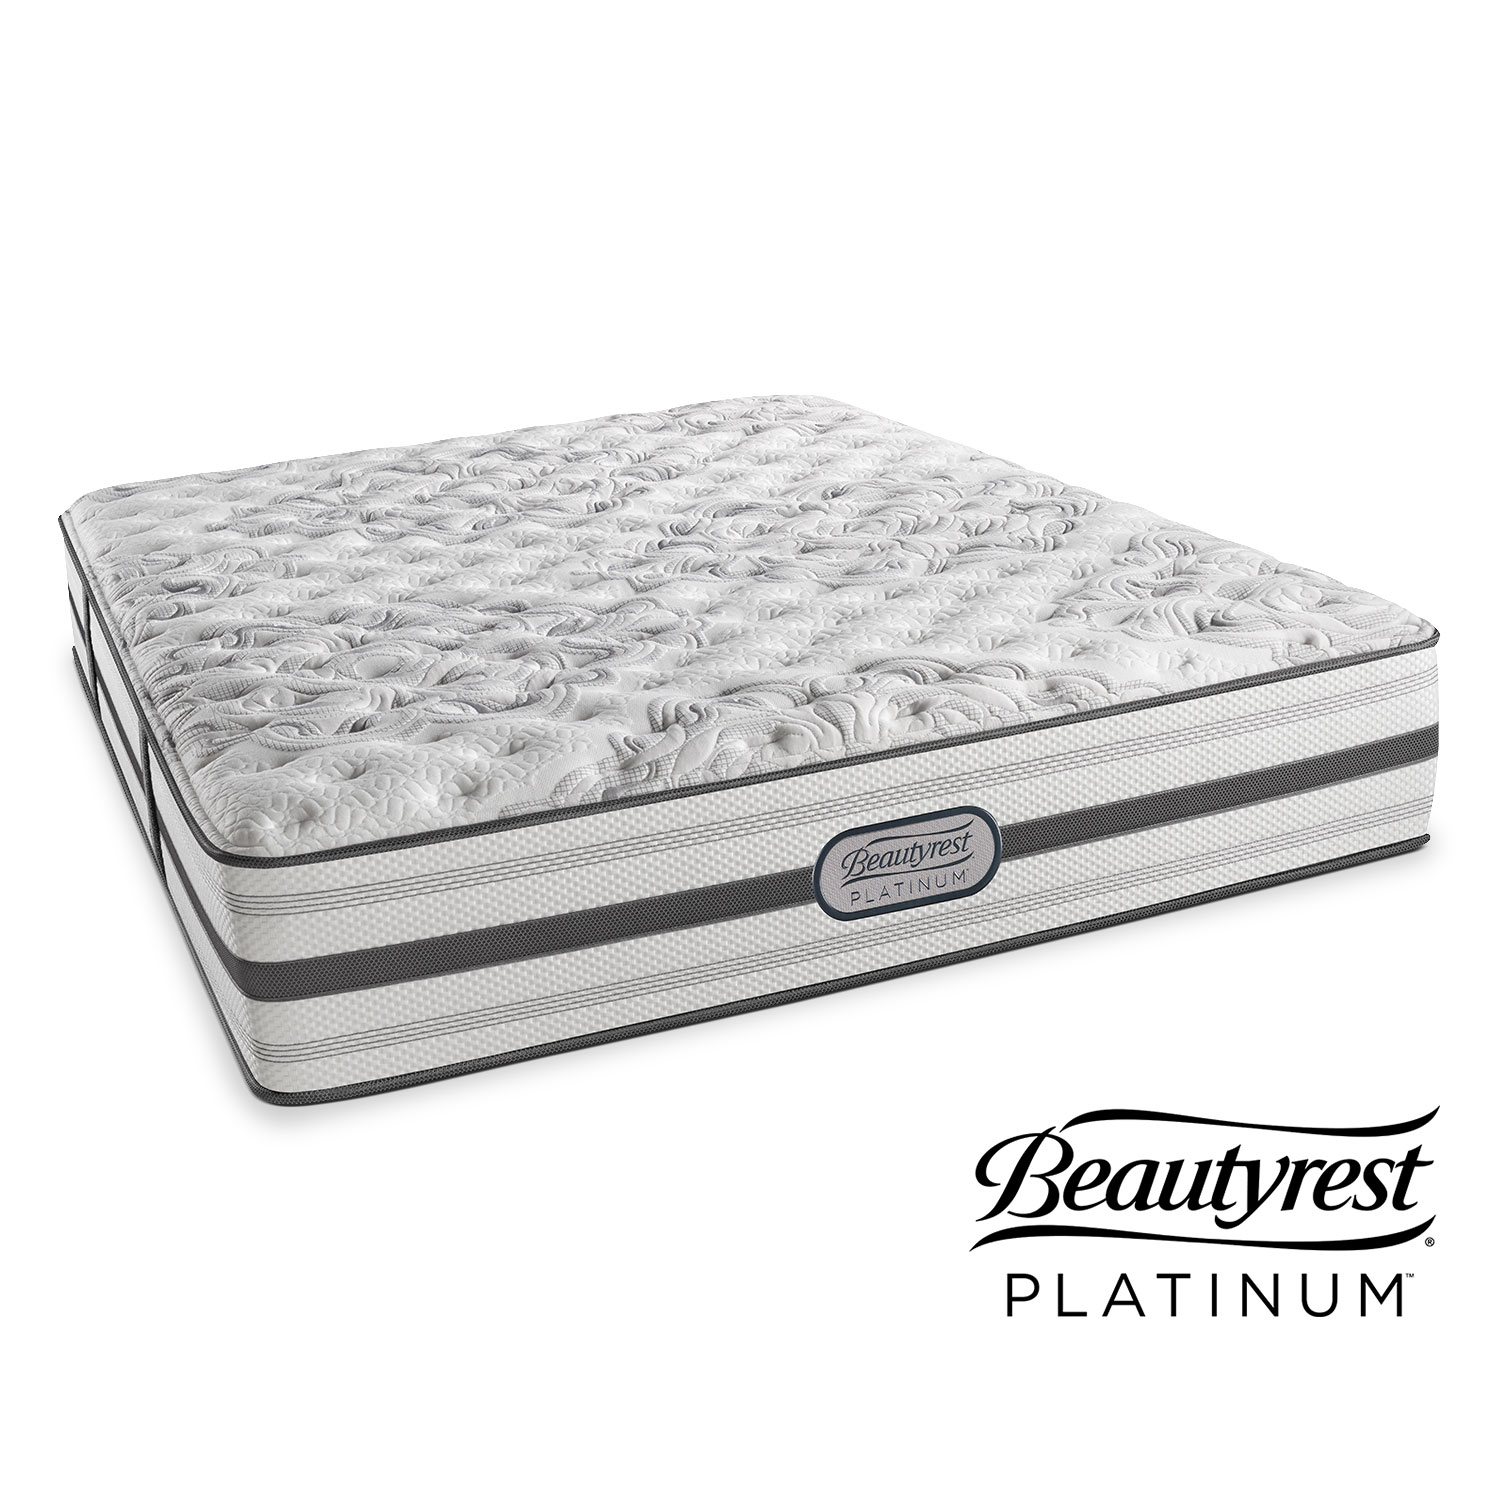 Mattresses and Bedding - Helena Extra-Firm California King Mattress